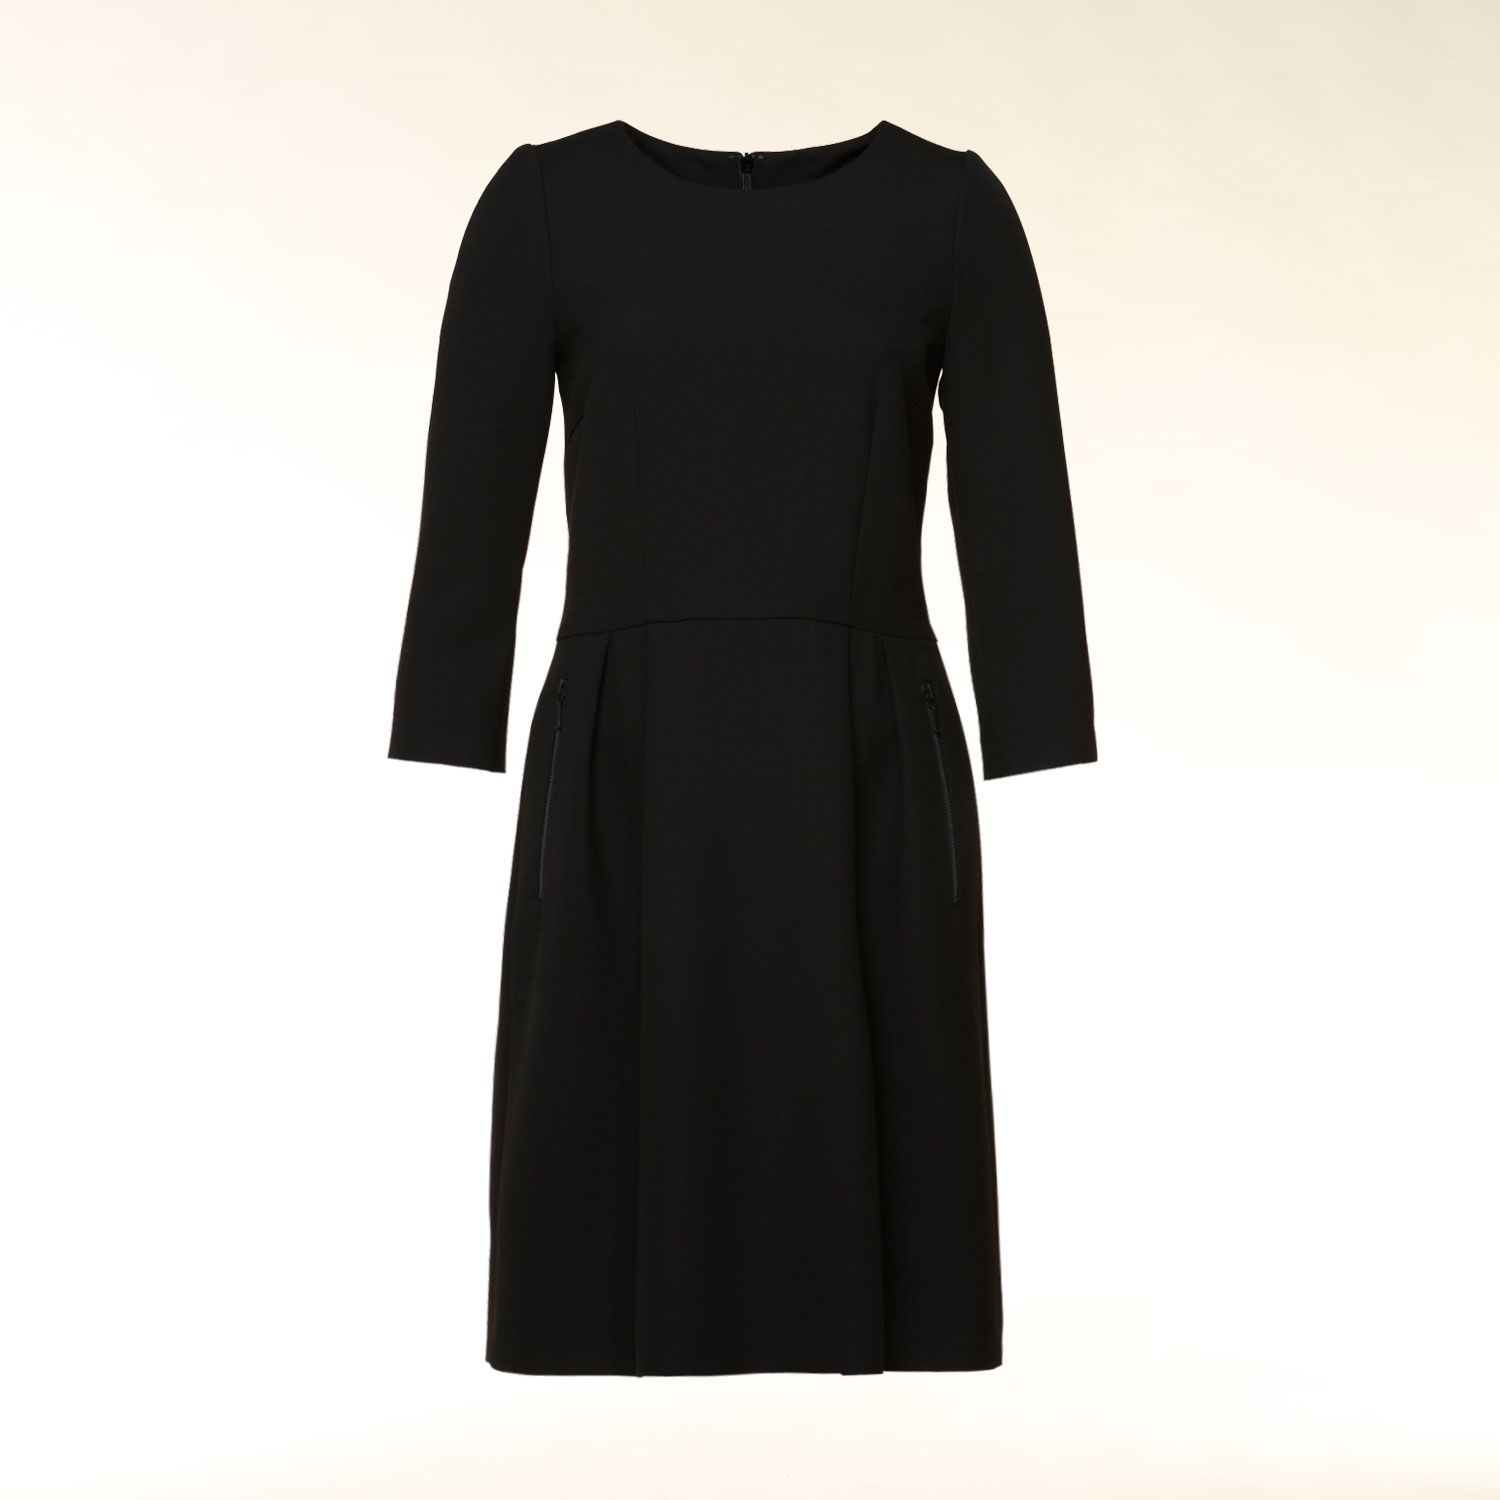 3/4 sleeve pleat detail dress